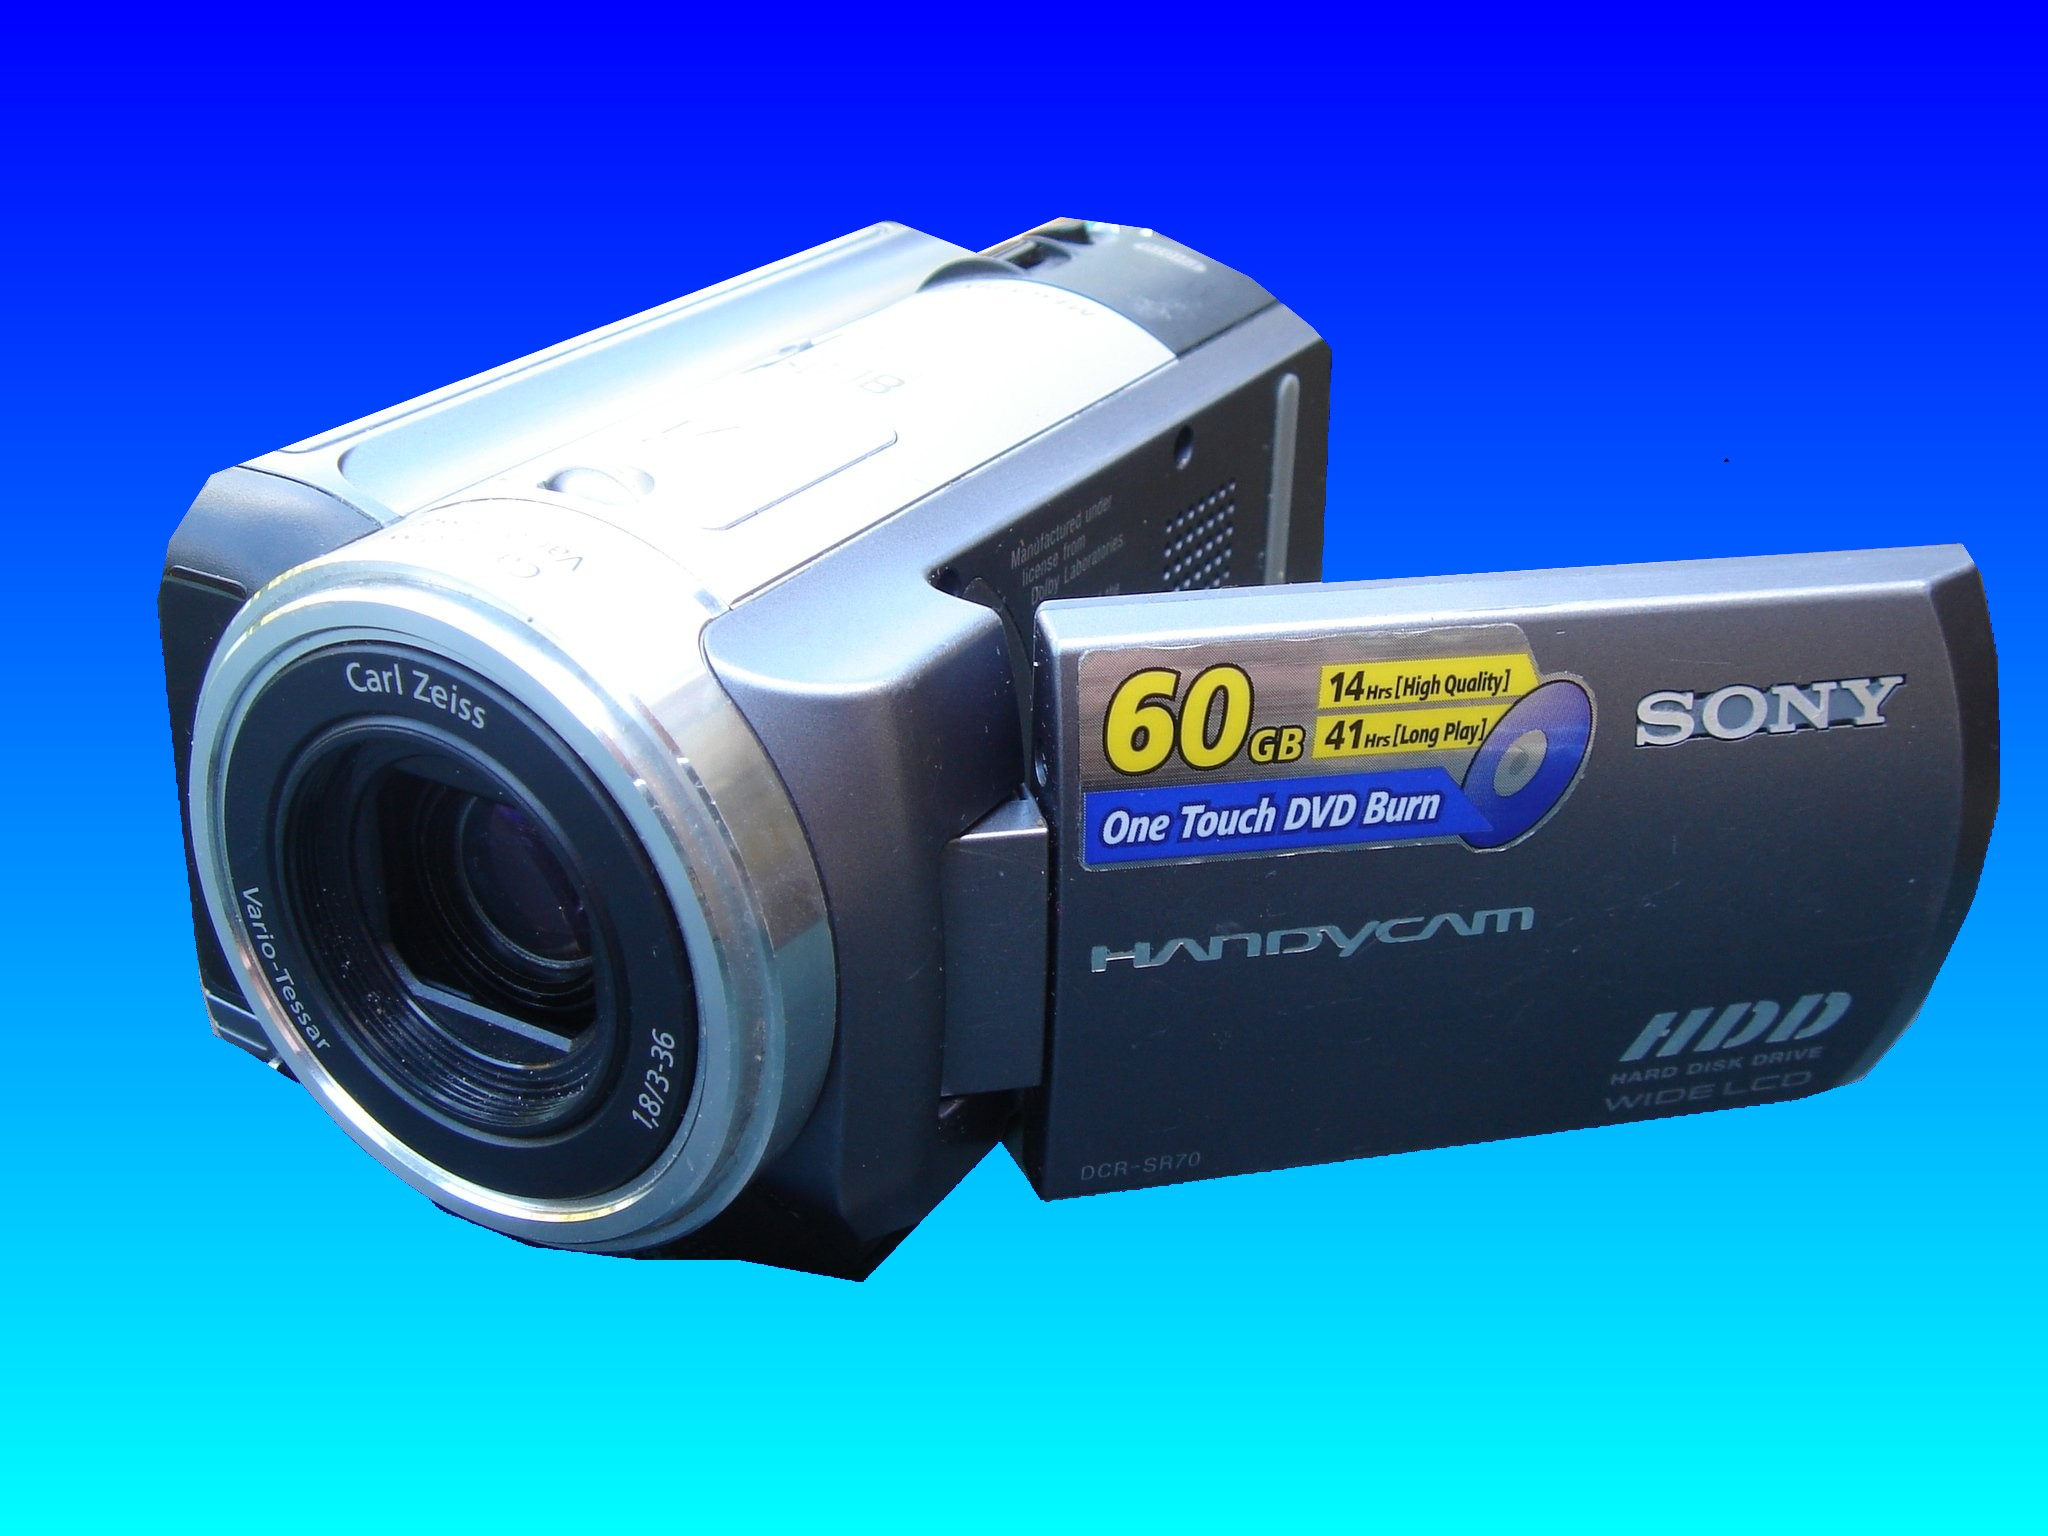 A Sony Handycam HDD model number DCR-SR70 which the owner accidentally deleted all the images of the video clips. The lcd display screen is shown slightly open.